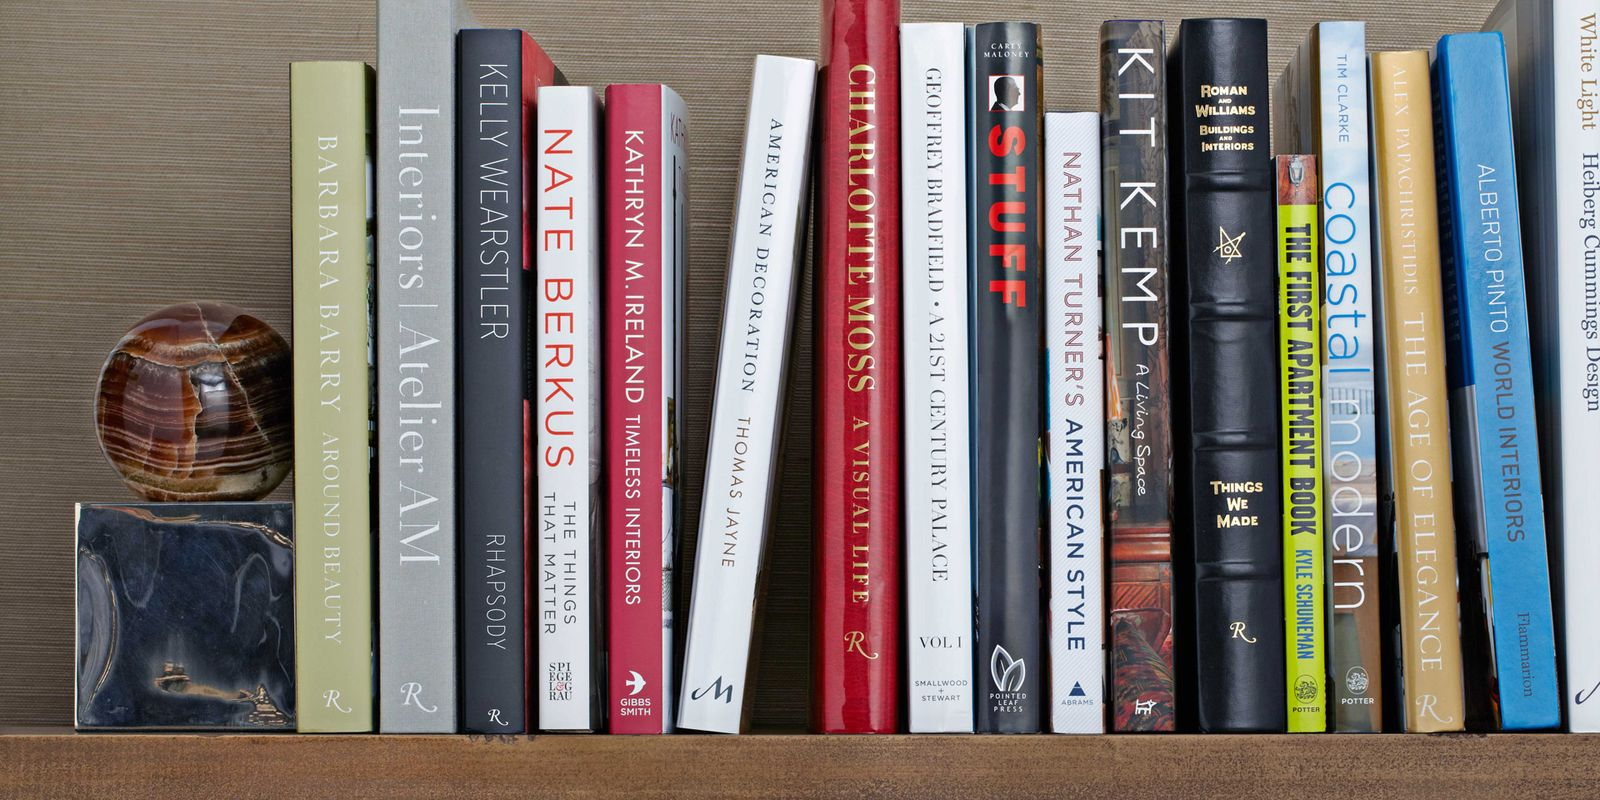 Best New Design Books Of 2013